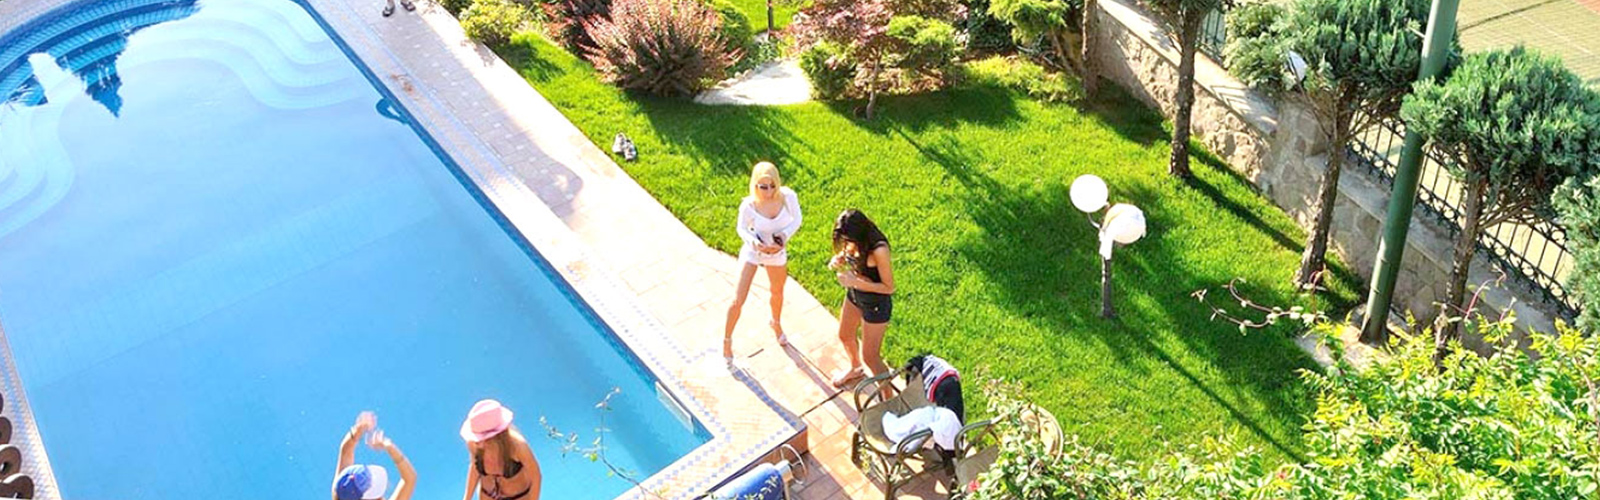 Concierge Belgrade | Private party in villa with indor pool